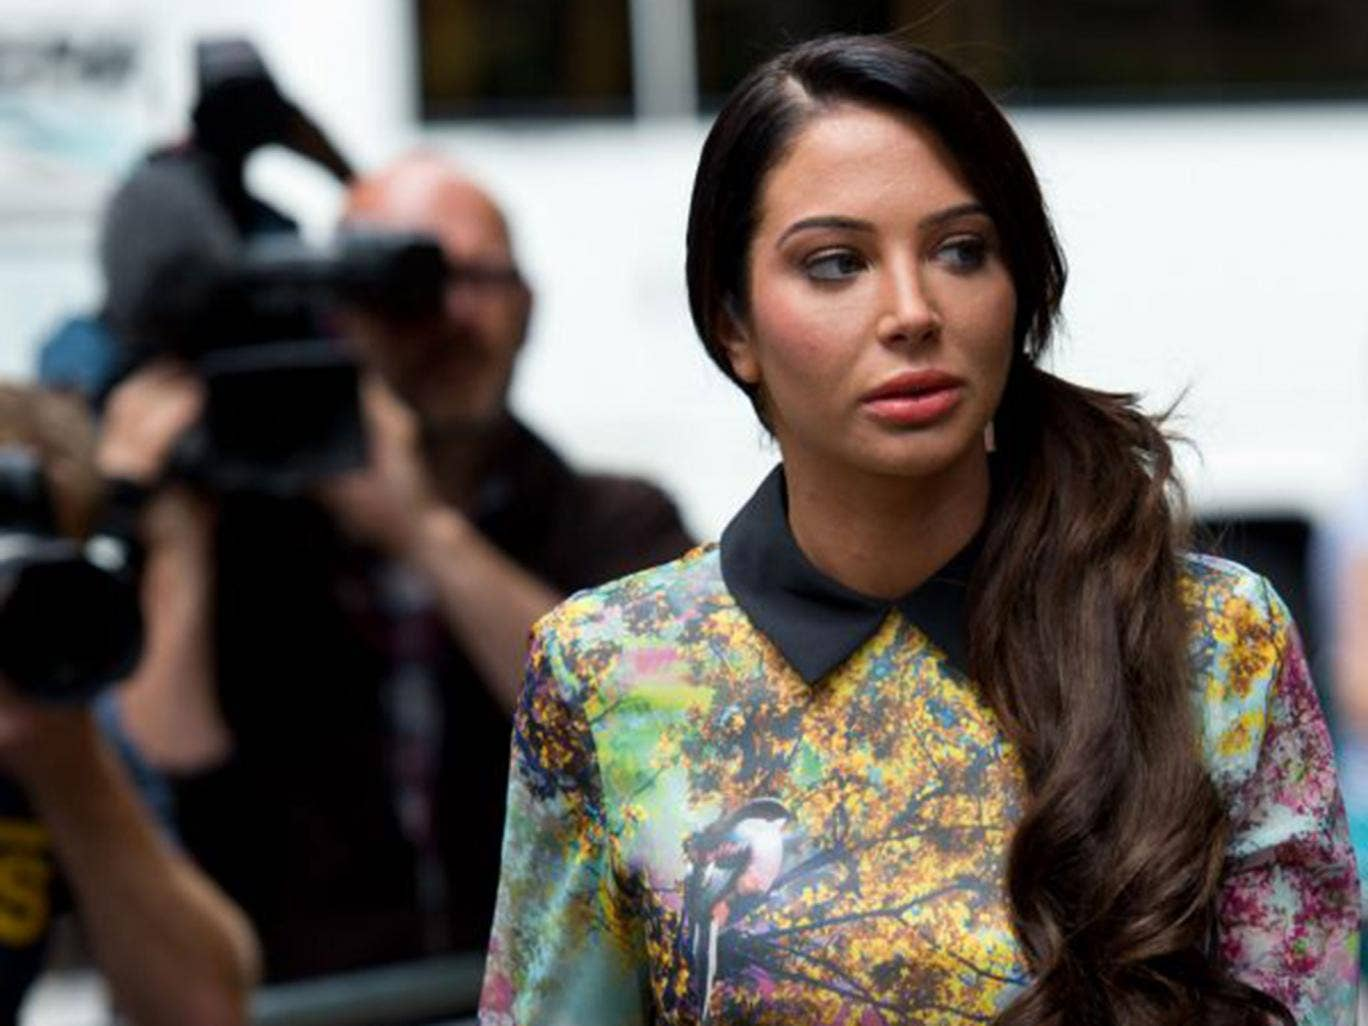 Tulisa arriving at Southwark Crown Court on 15 July